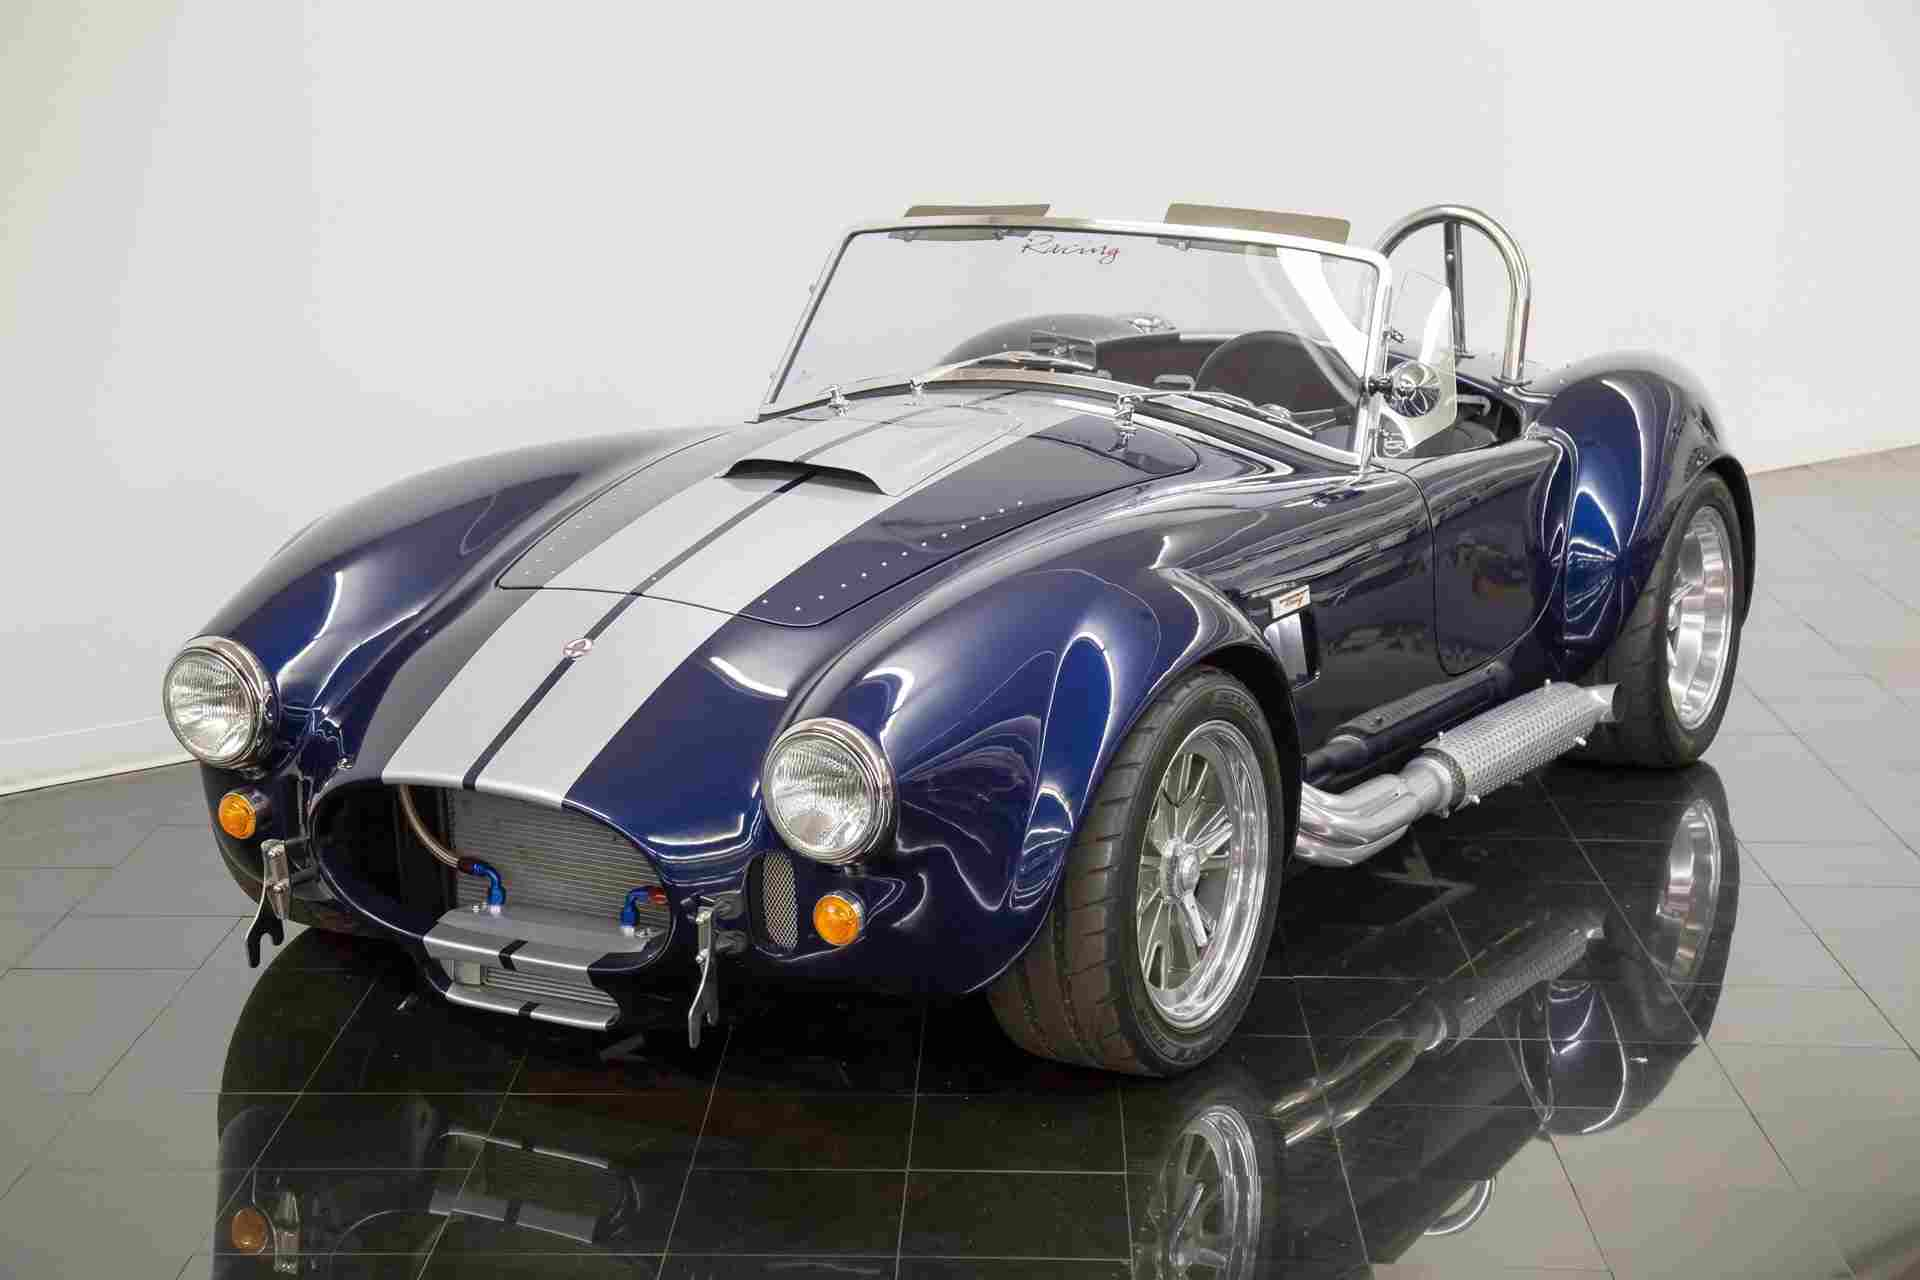 1965 Shelby Cobra Replica by Backdraft Racing Roadster for sale